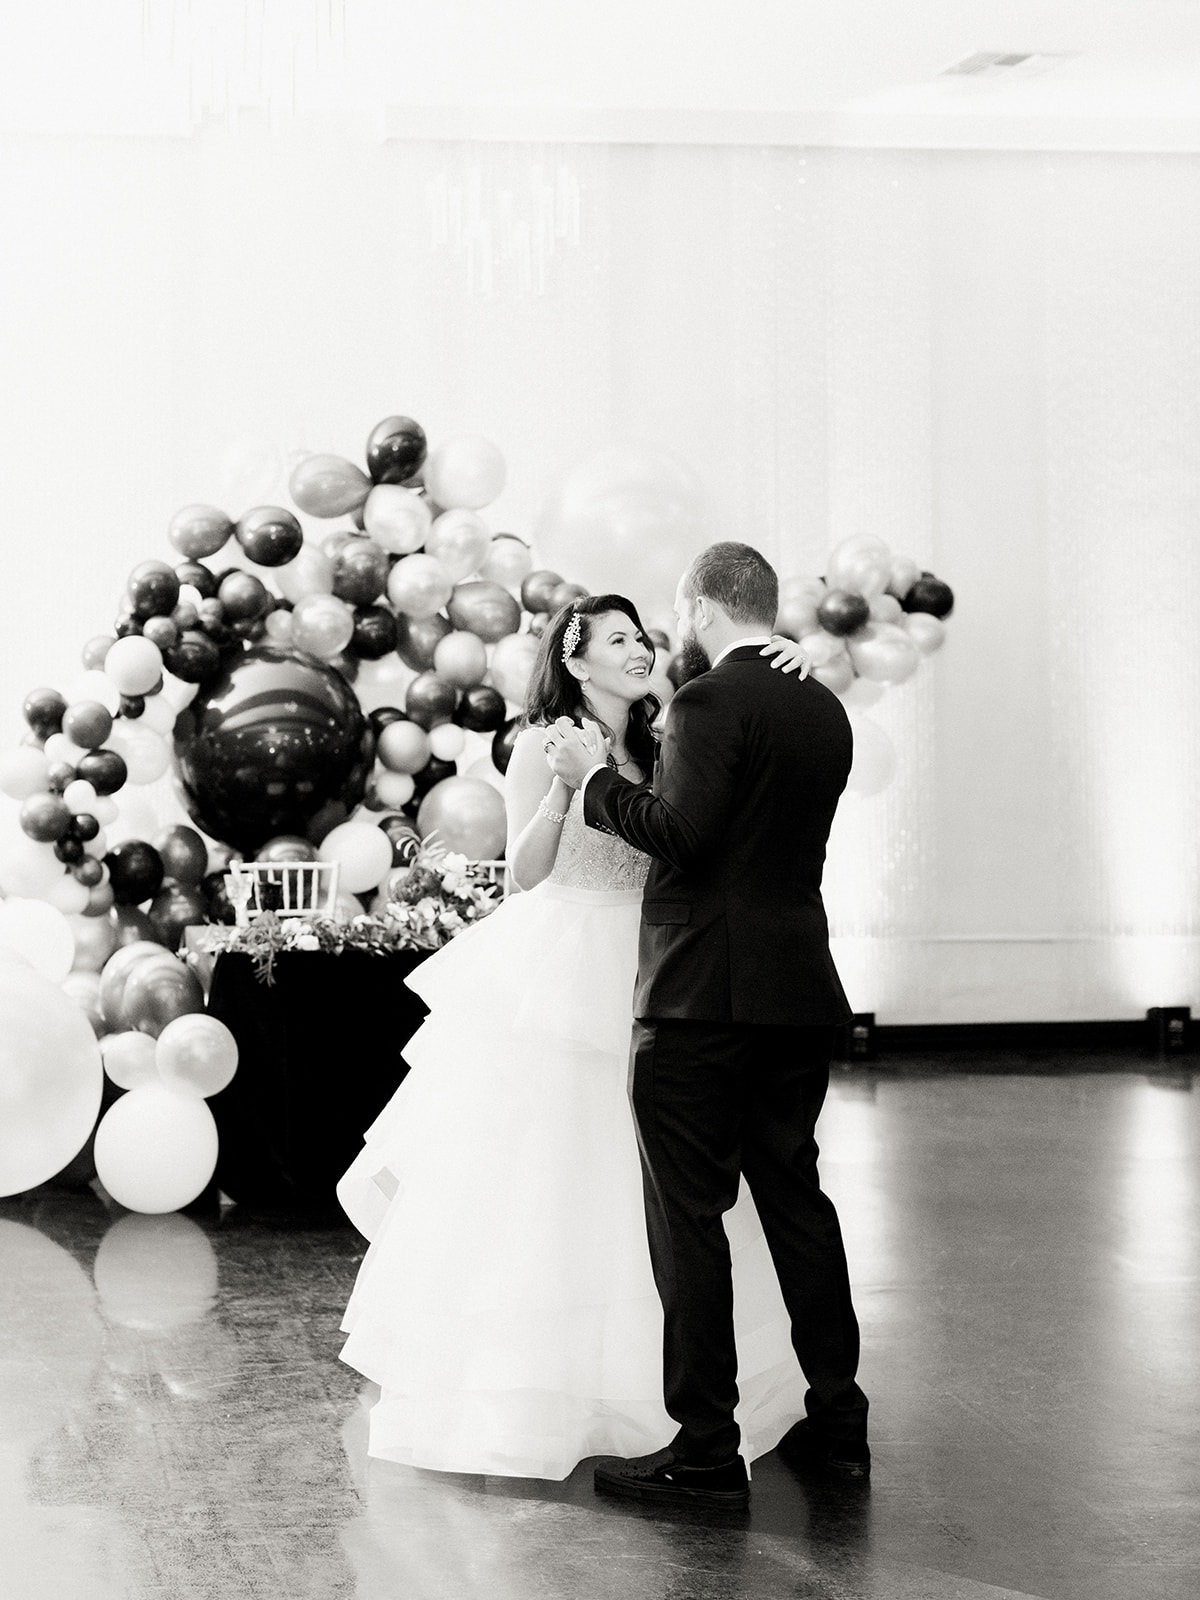 The+Perfect+Winter+Wedding+on+NYE+Filled+with+Balloons+and+Lots+of+Velvet%3A+Kellye+%26+Trevor-+Konsider+It+Done-+AZ+Arizona+Wedding+%26+Event+Planner%2C+Designer%2C+Coordinator+Planning+in+Scottsdale%2C+Phoenix%2C+Paradise+Valley%2C+Tempe%2C+Gilbert%2C+Mesa%2C+Chandler%2C+Tucson%2C+Sedona%2C+Soho63